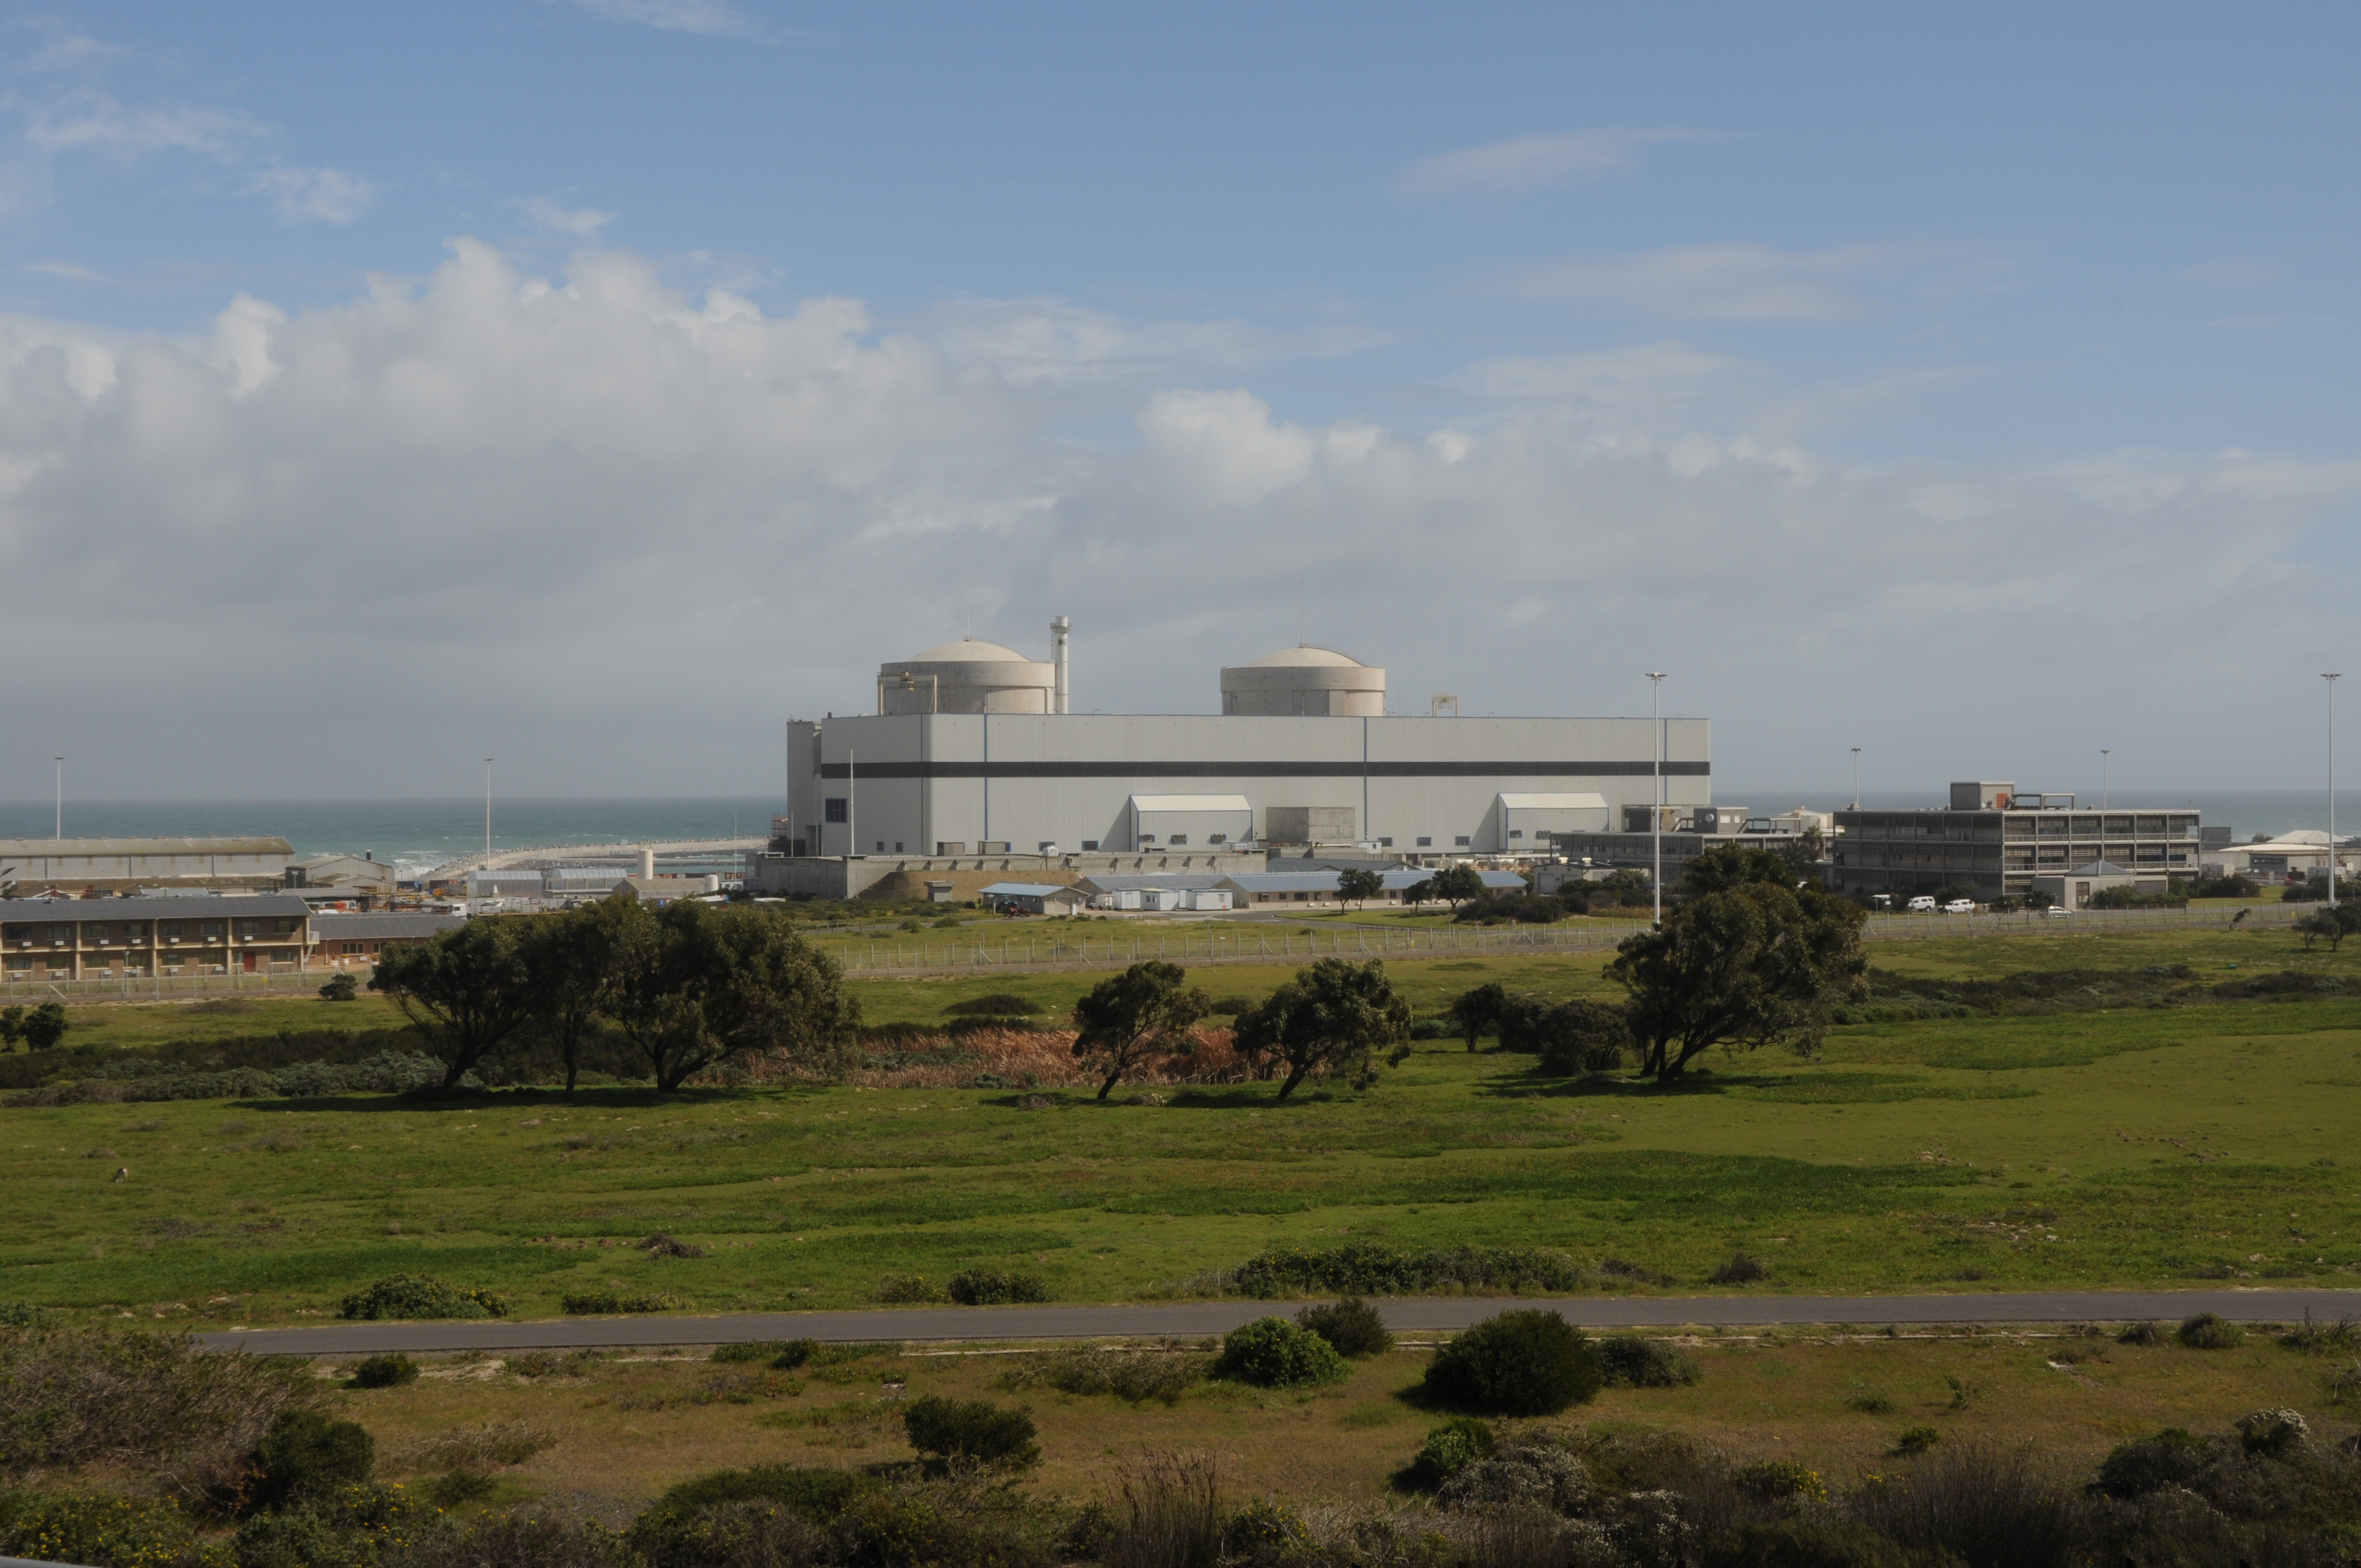 nuclear power plant pdf file download